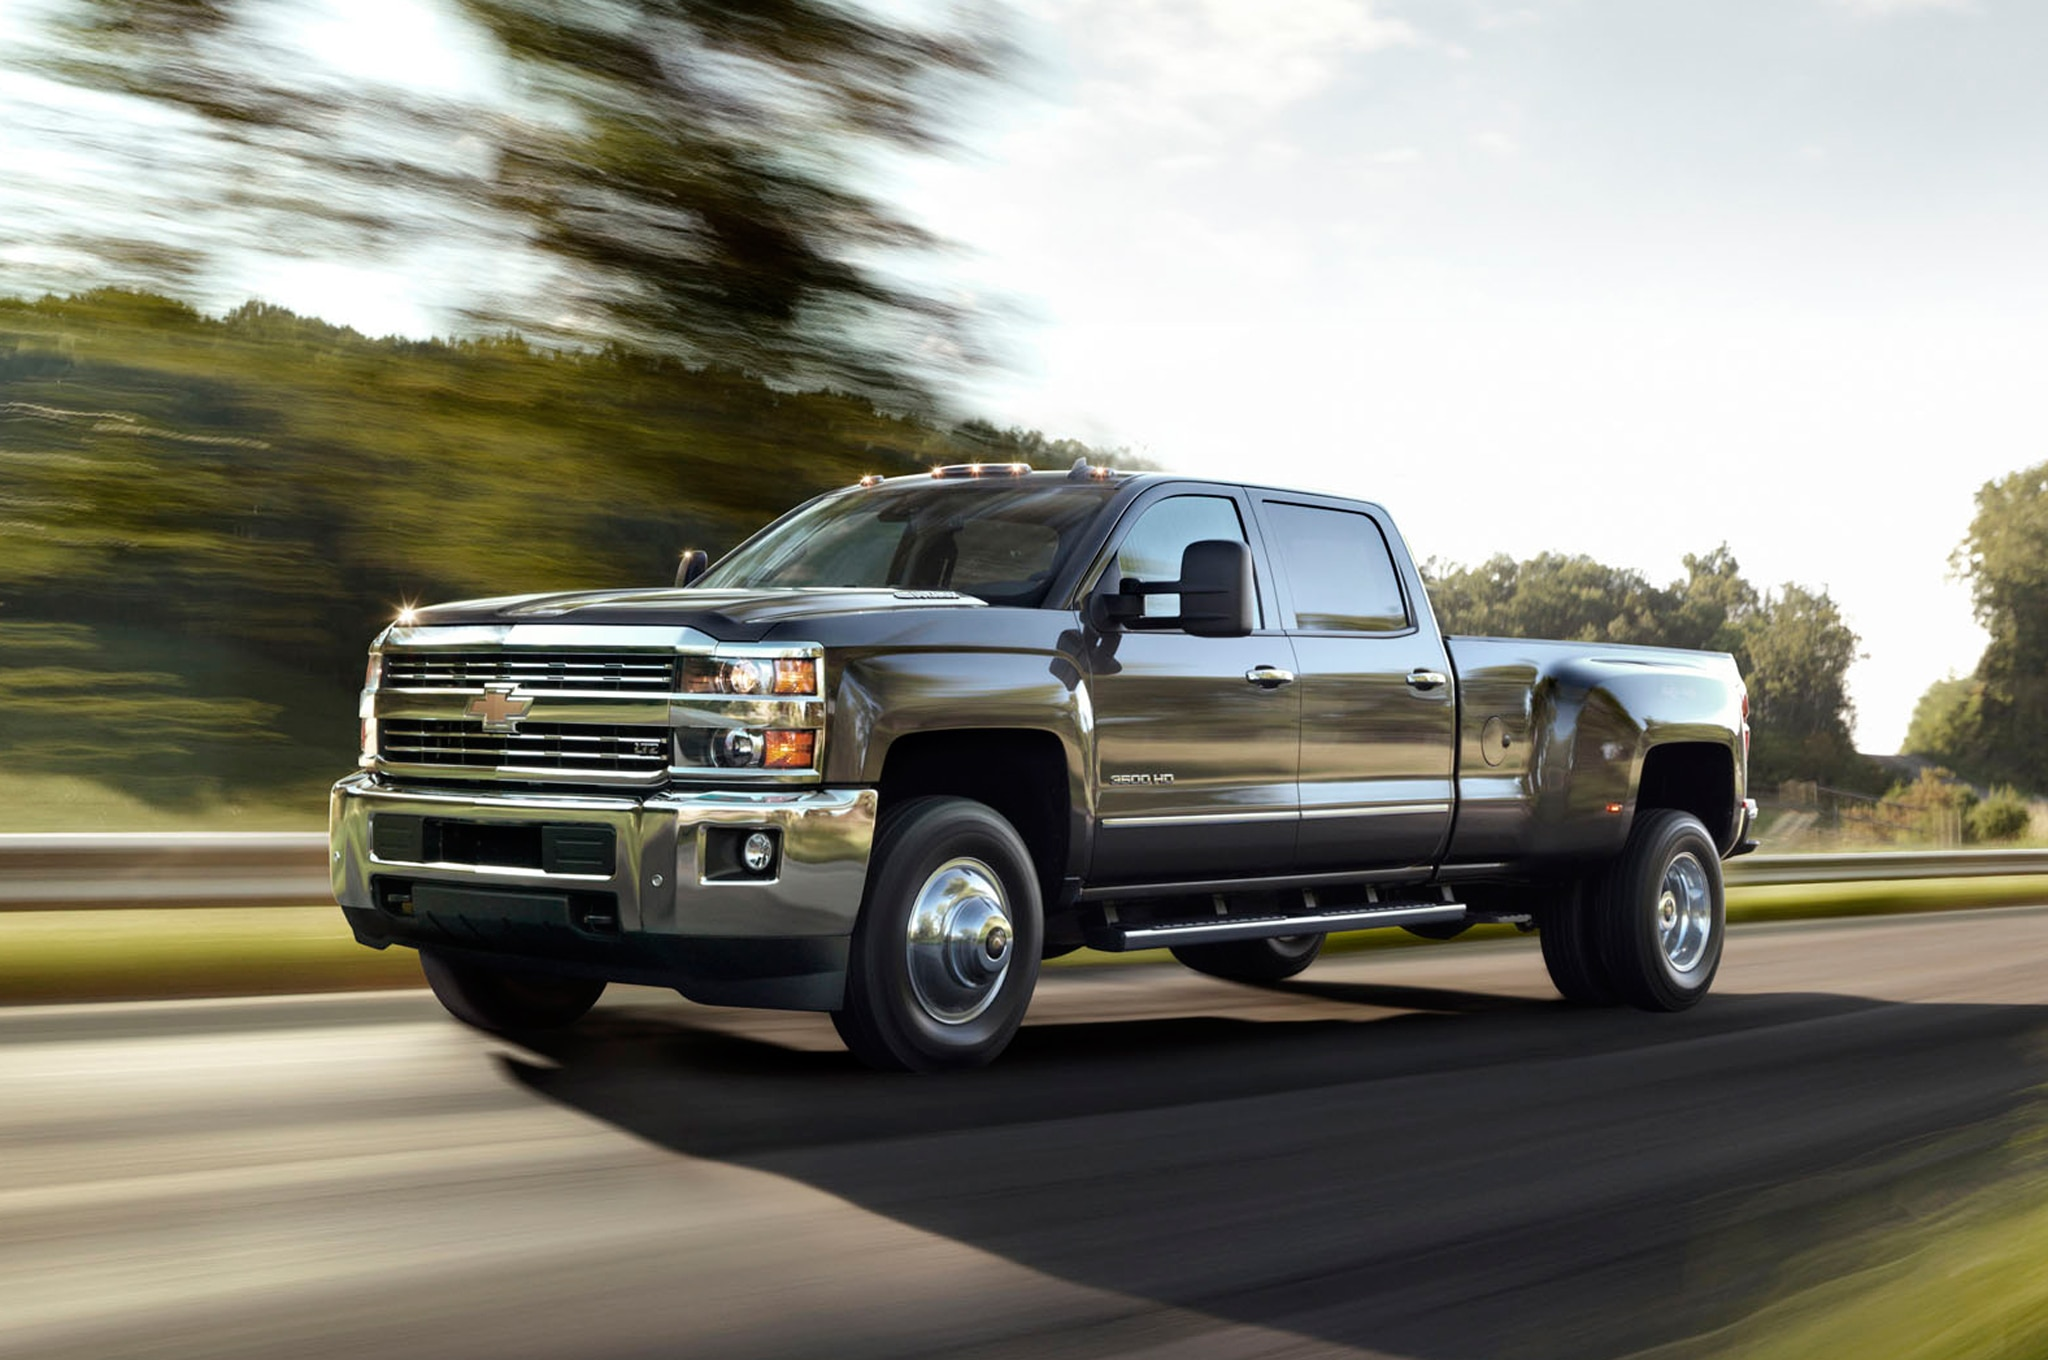 2015 Chevrolet Silverado 3500HD LTZ front three quarters in motion